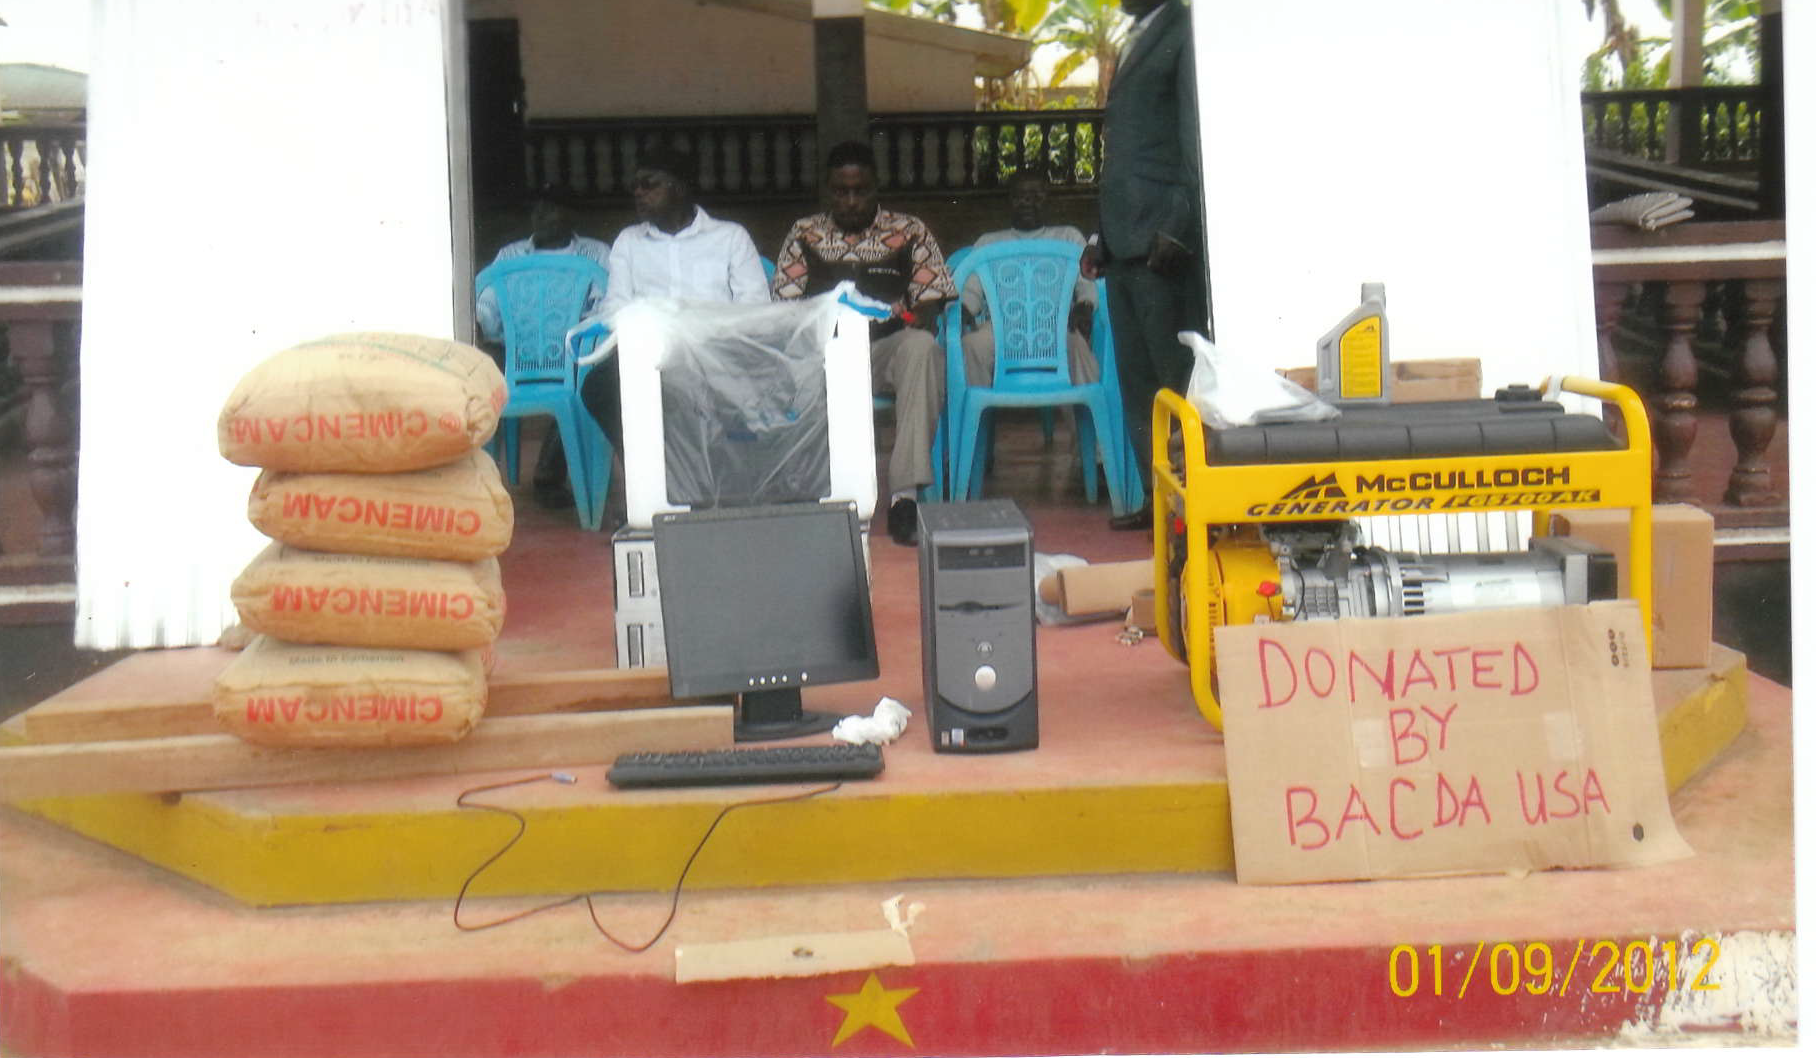 Donations from BACDA USA - Project carried out by the Education Committee. Building Supplies, Computers and a generator.